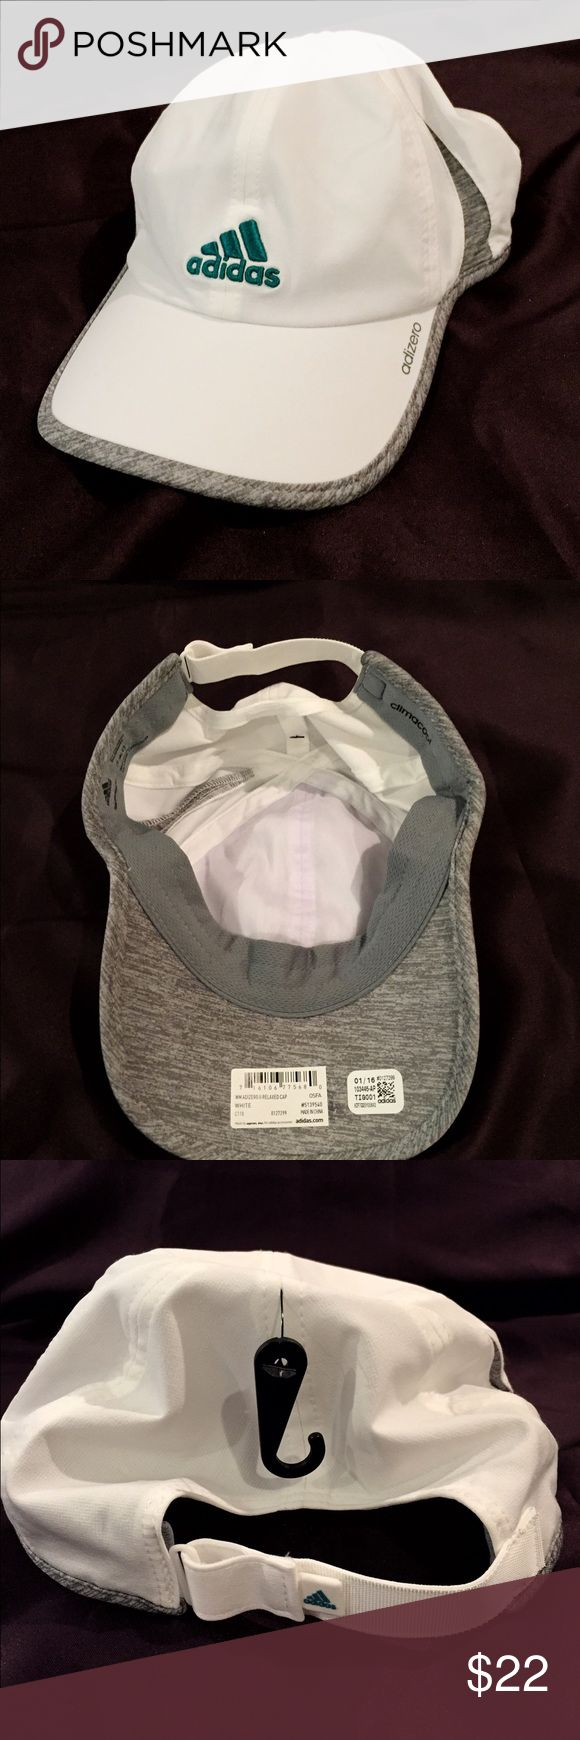 NEW Adidas women's white hat adizero II Adidas women's adizero II HAT. NEW WITH TAG. bought at adidas warehouse sale (no returns). Green (turquoise) adidas logo. Marbles gray trim. Super cute hat! NEVER WORN! Adidas Accessories Hats